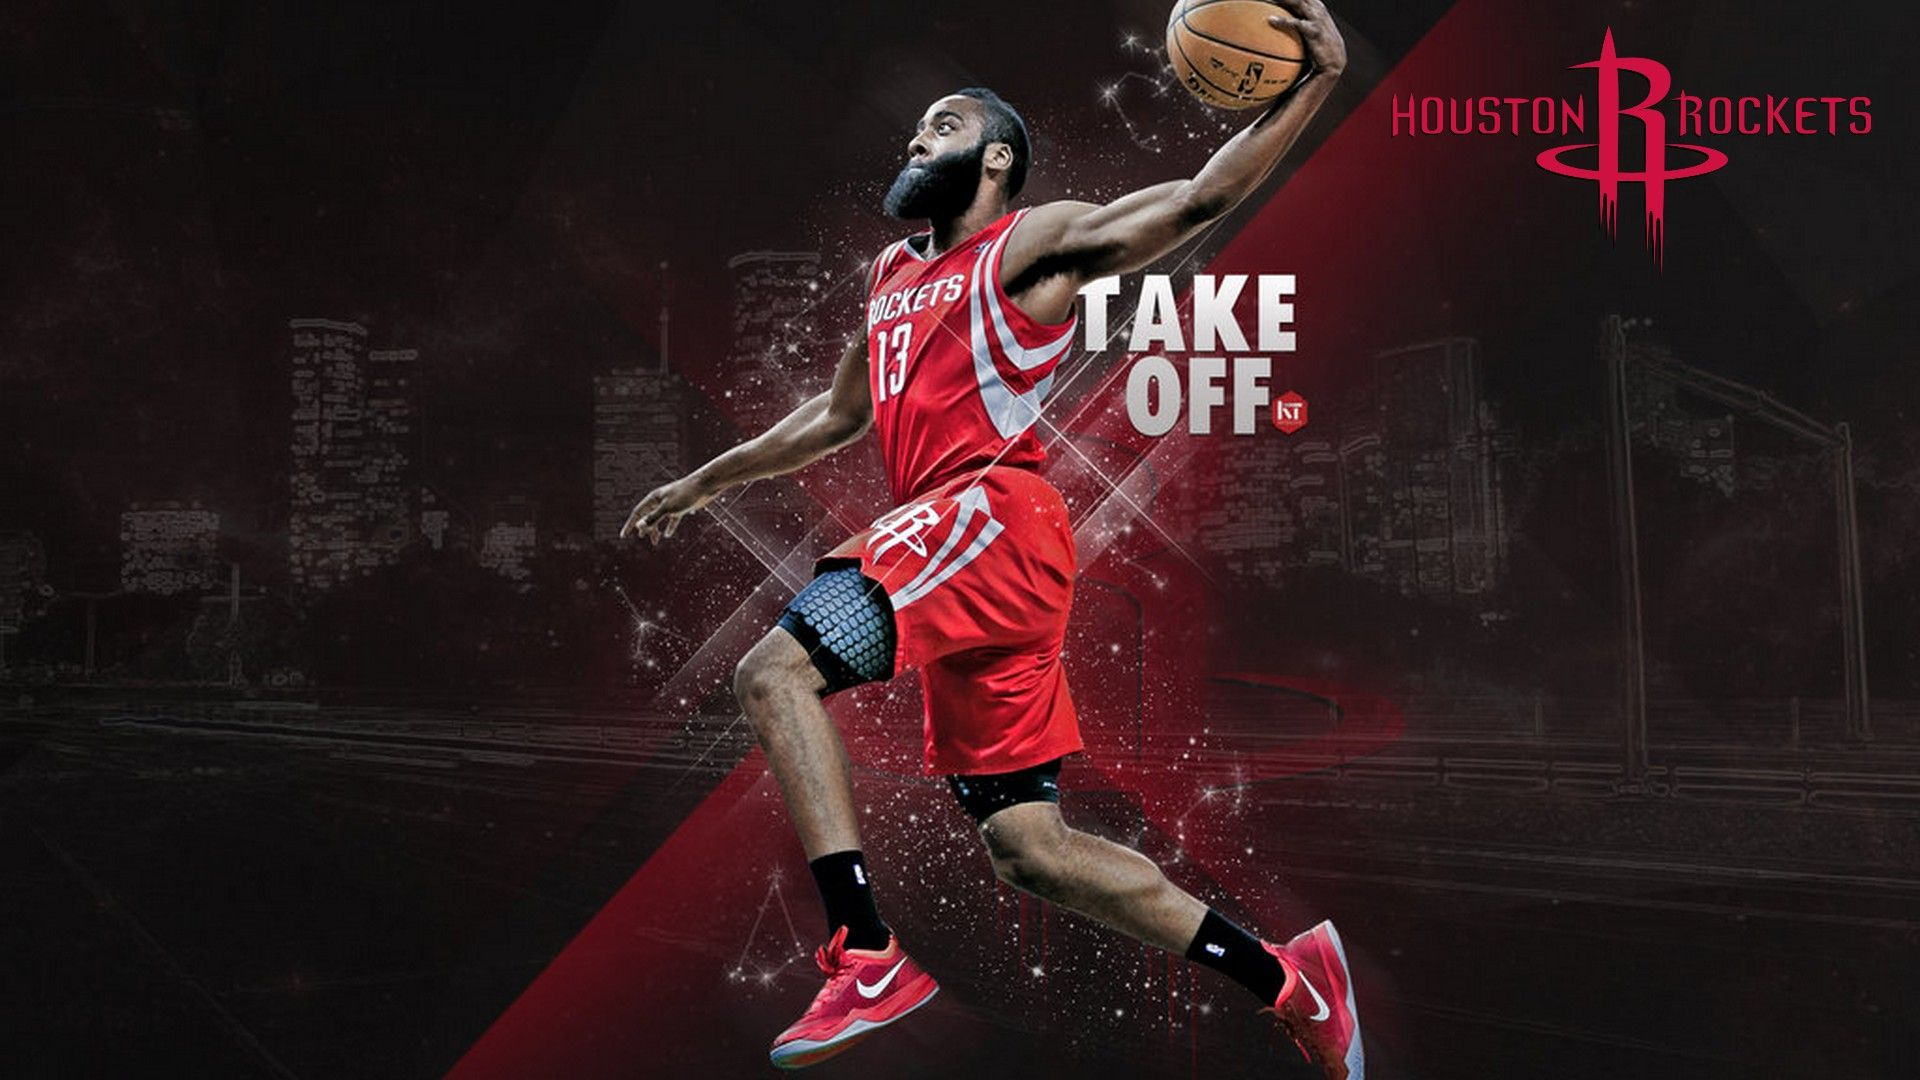 James Harden Beard Wallpaper James harden, Houston